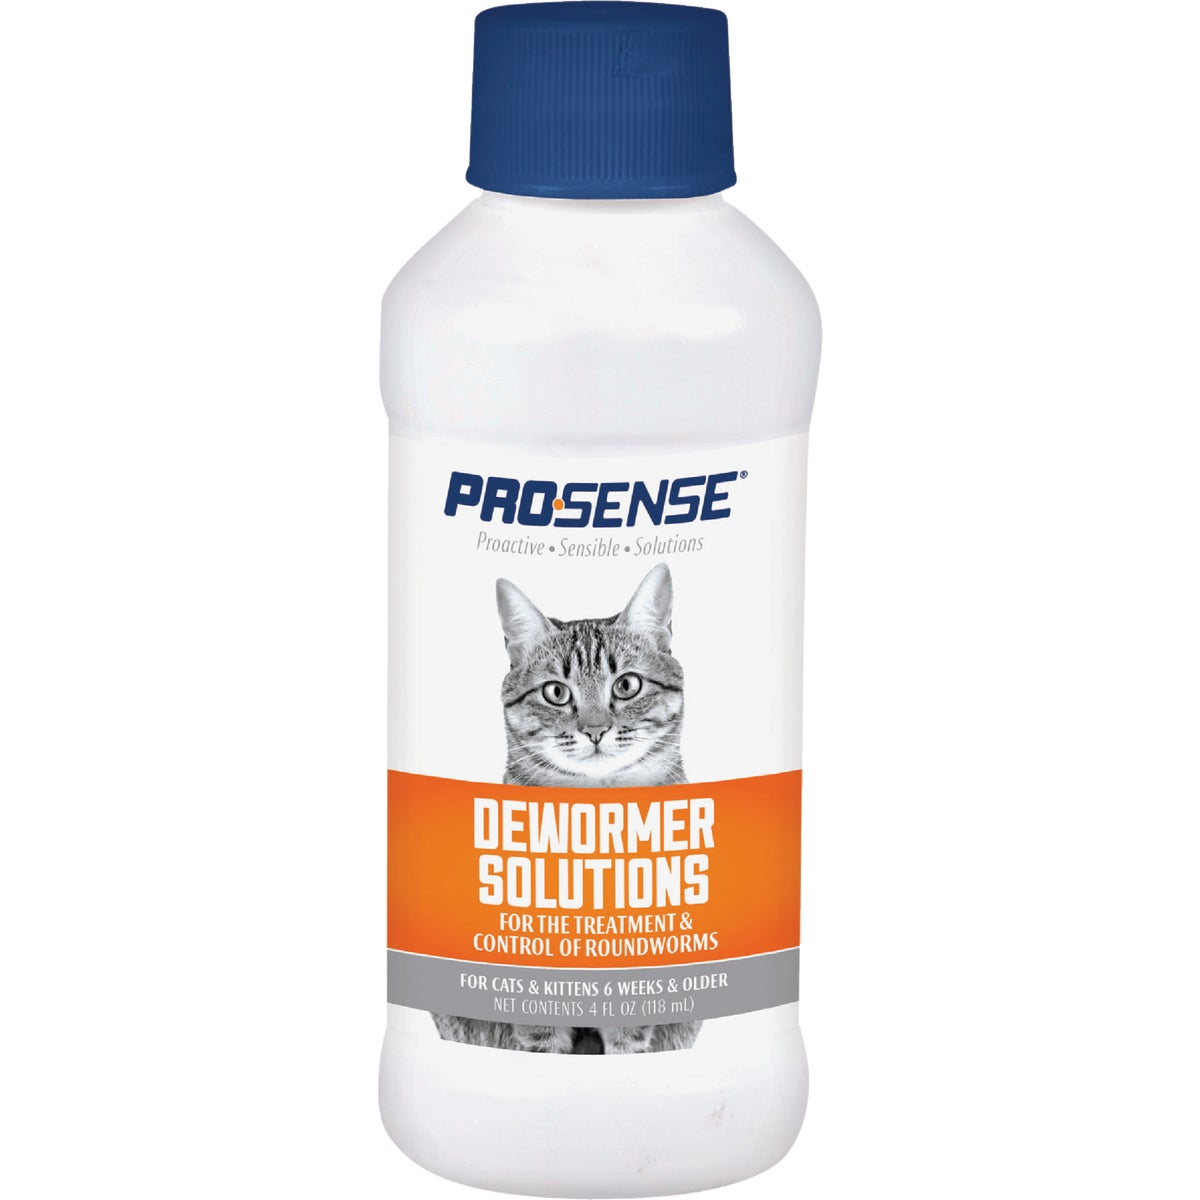 P-S CAT DEWORMER 4OZ - M1717B-100 by United Pet Group